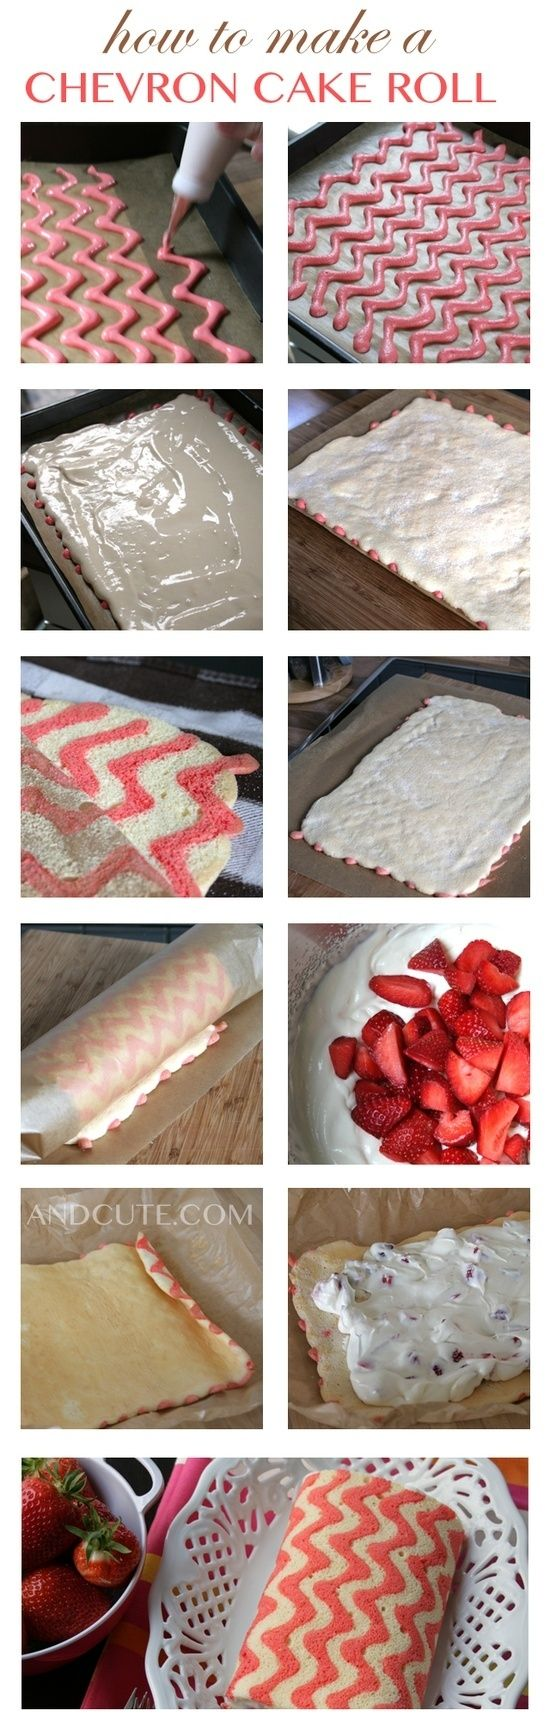 Chevron Cake Roll. So cool!!! by v_noreen2